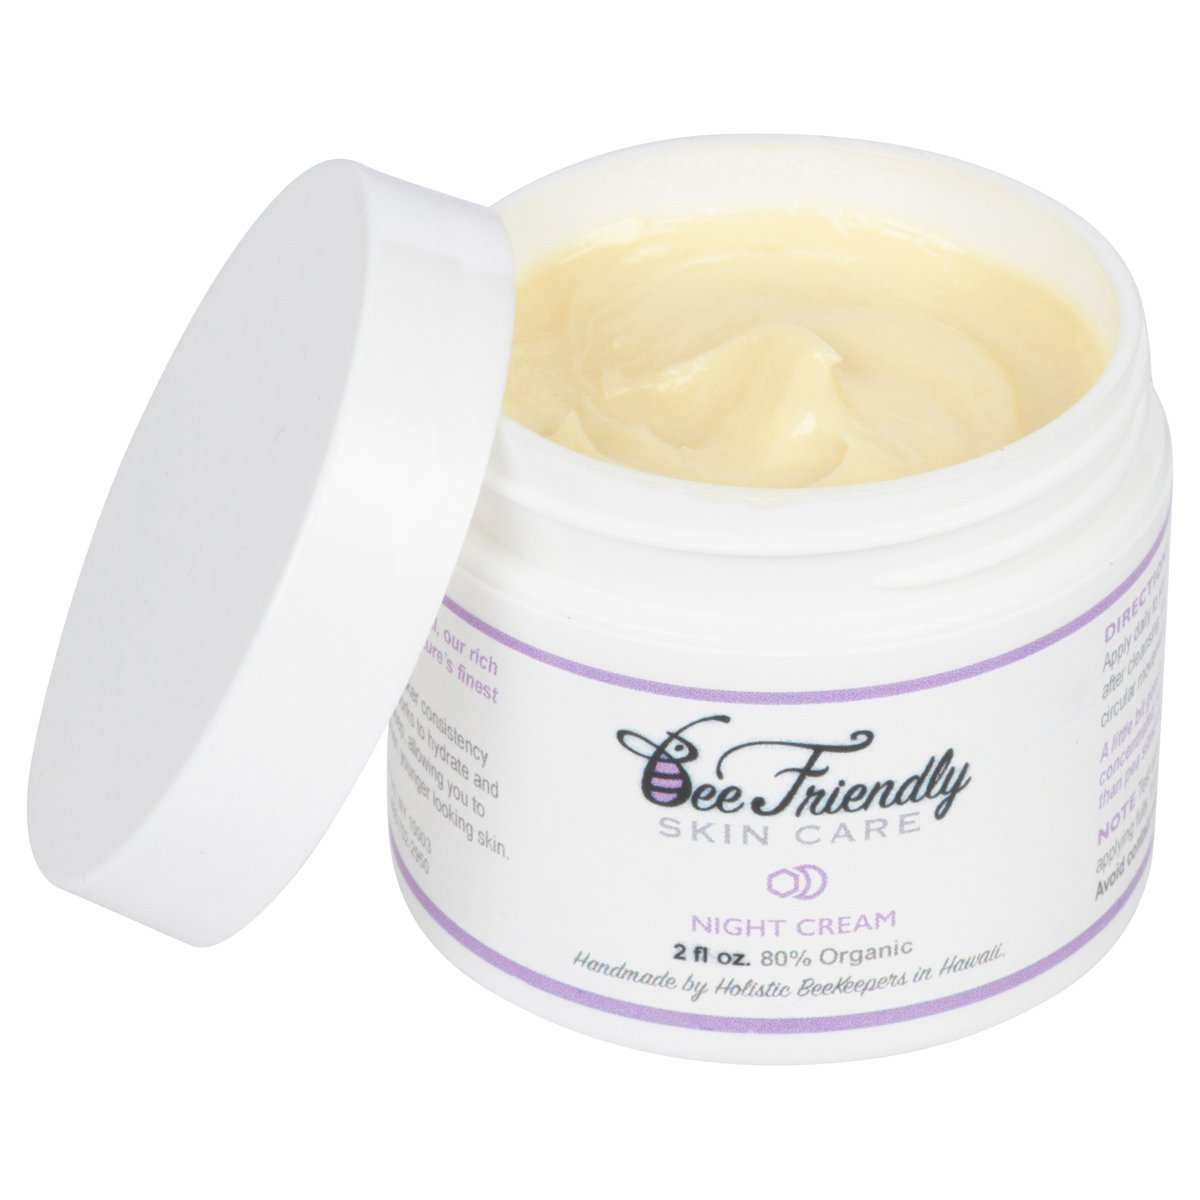 Best Night Cream 100% All Natural & 80% Organic Night Cream By BeeFriendly, Anti Wrinkle, Anti Aging, Deep Hydrating & Moisturizing Night Time Eye, Face, Neck & Decollete Cream for Men and Women